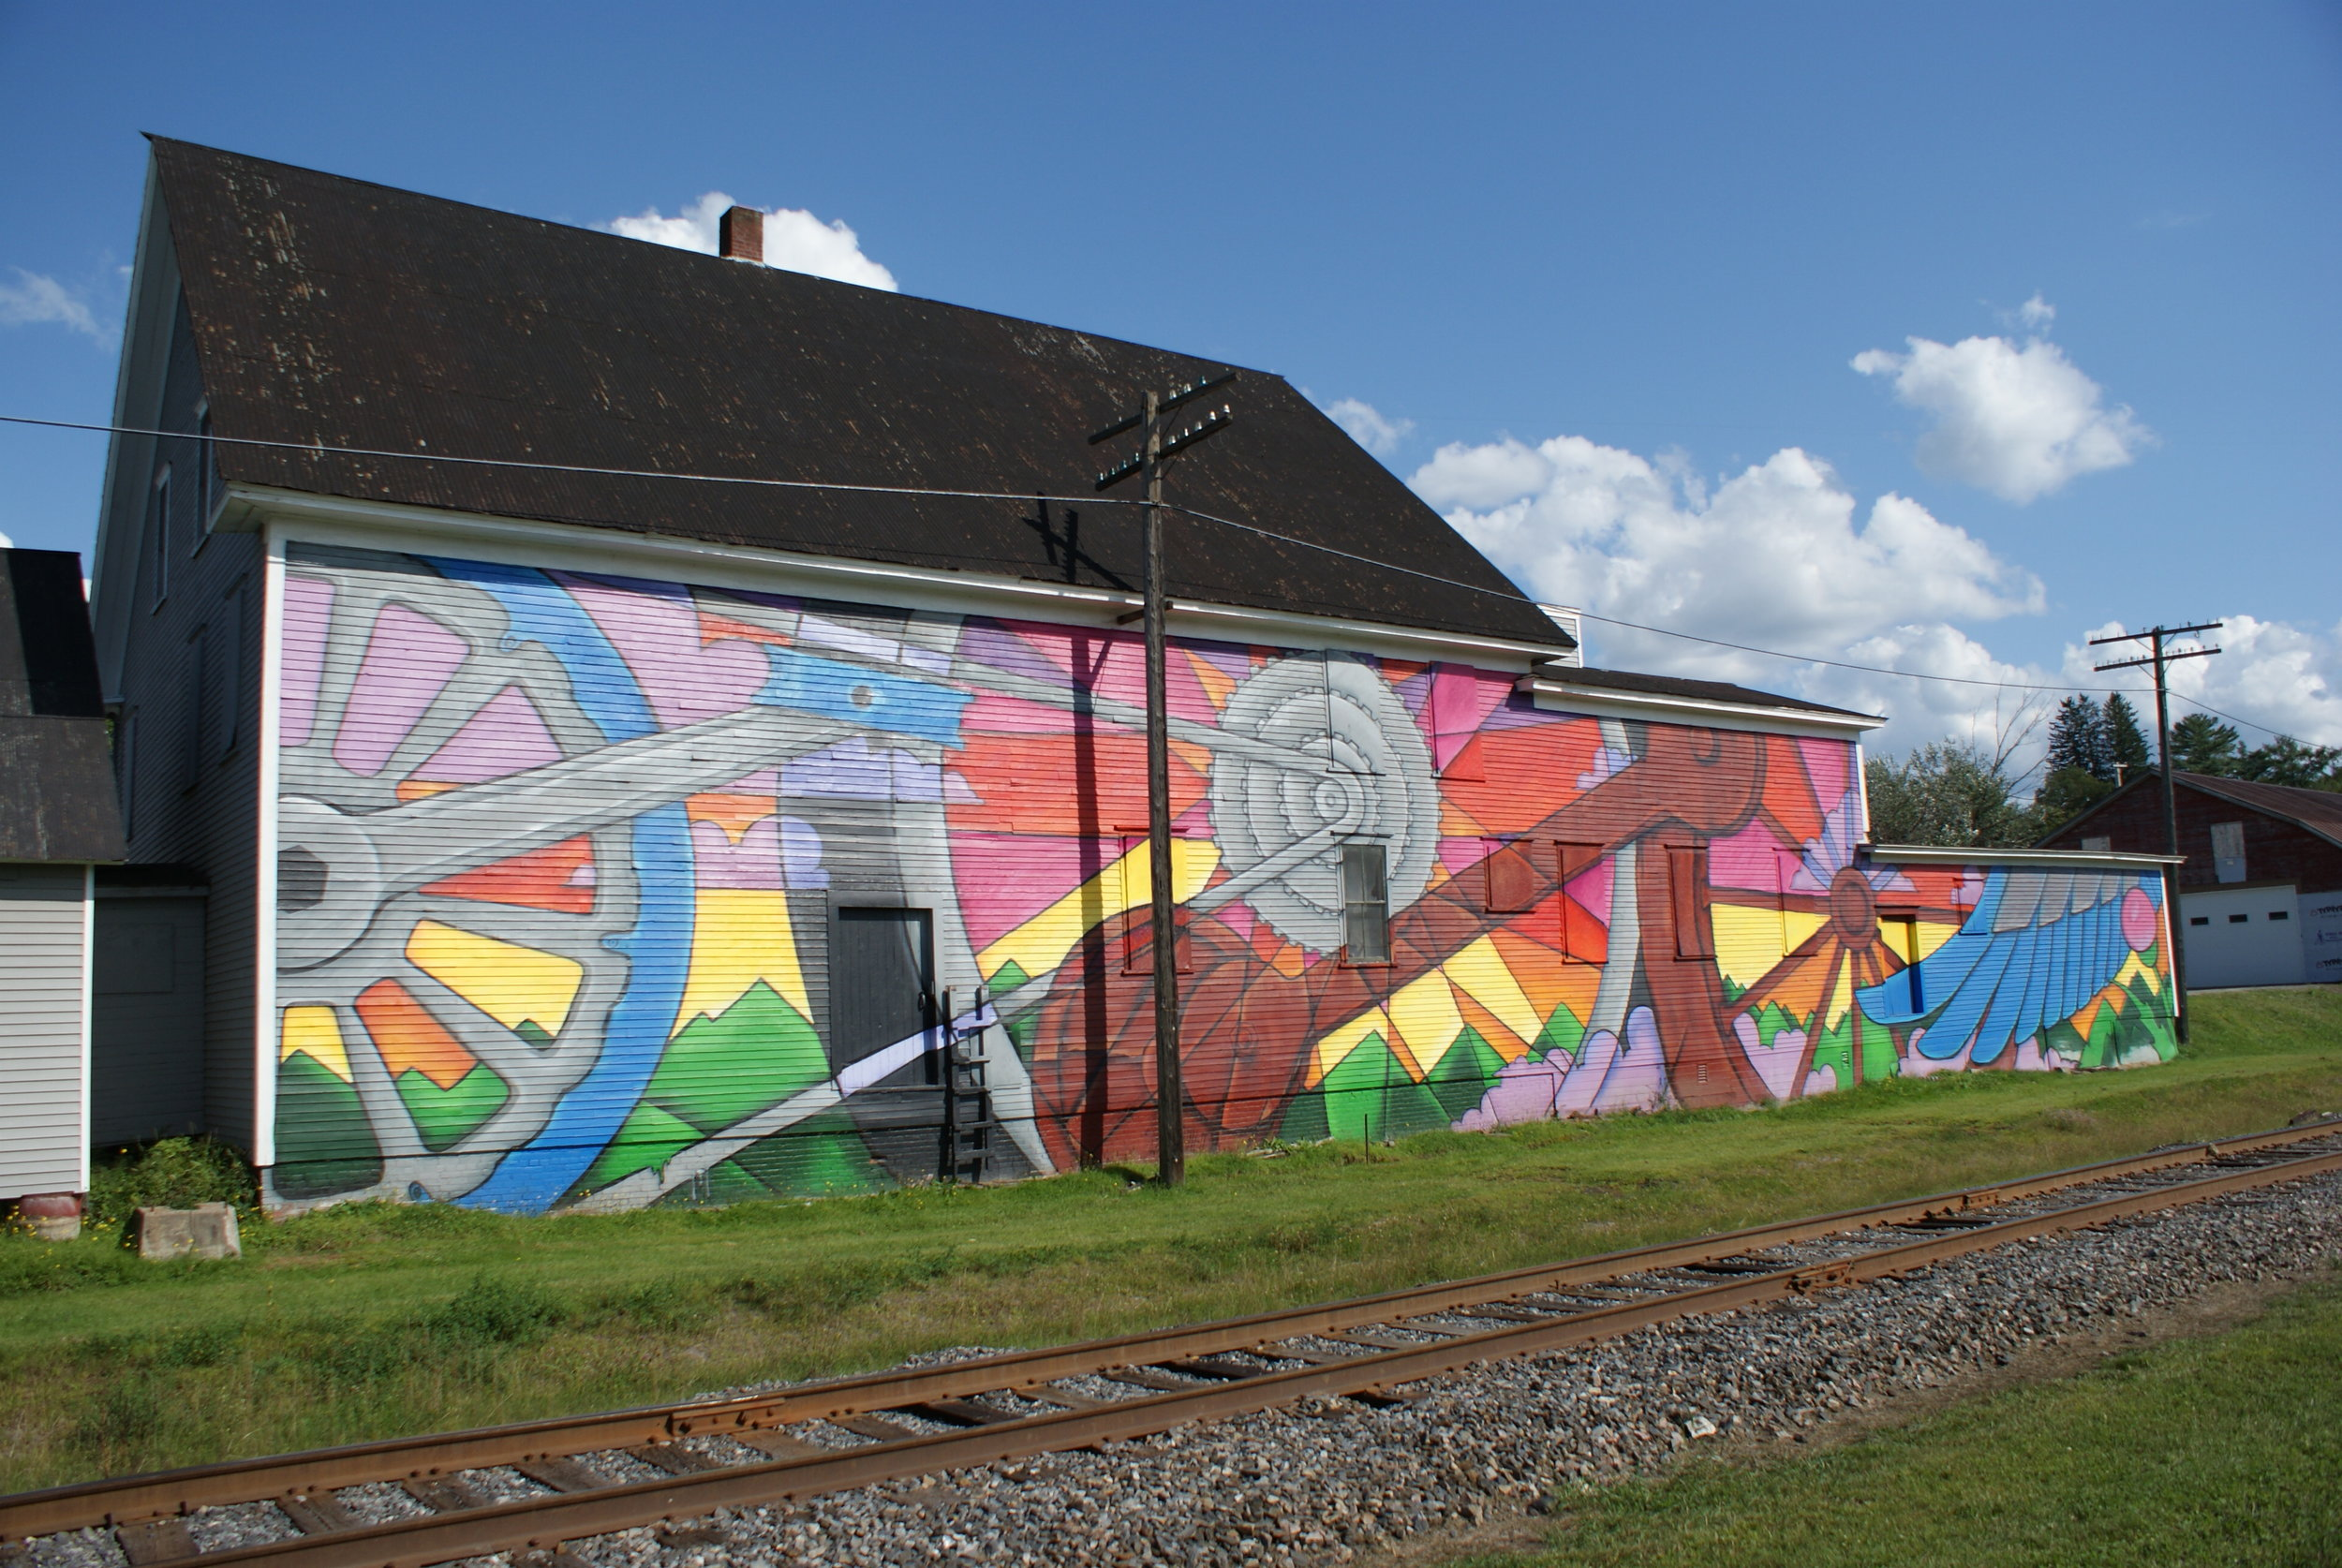 Mural in downtown Lyndonville, Vermont, by artists Scottie Raymond and Brian Clark of the Anthill Collective in Hyde Park. The mural was painted in October 2018 as part of a downtown revitalization effort.